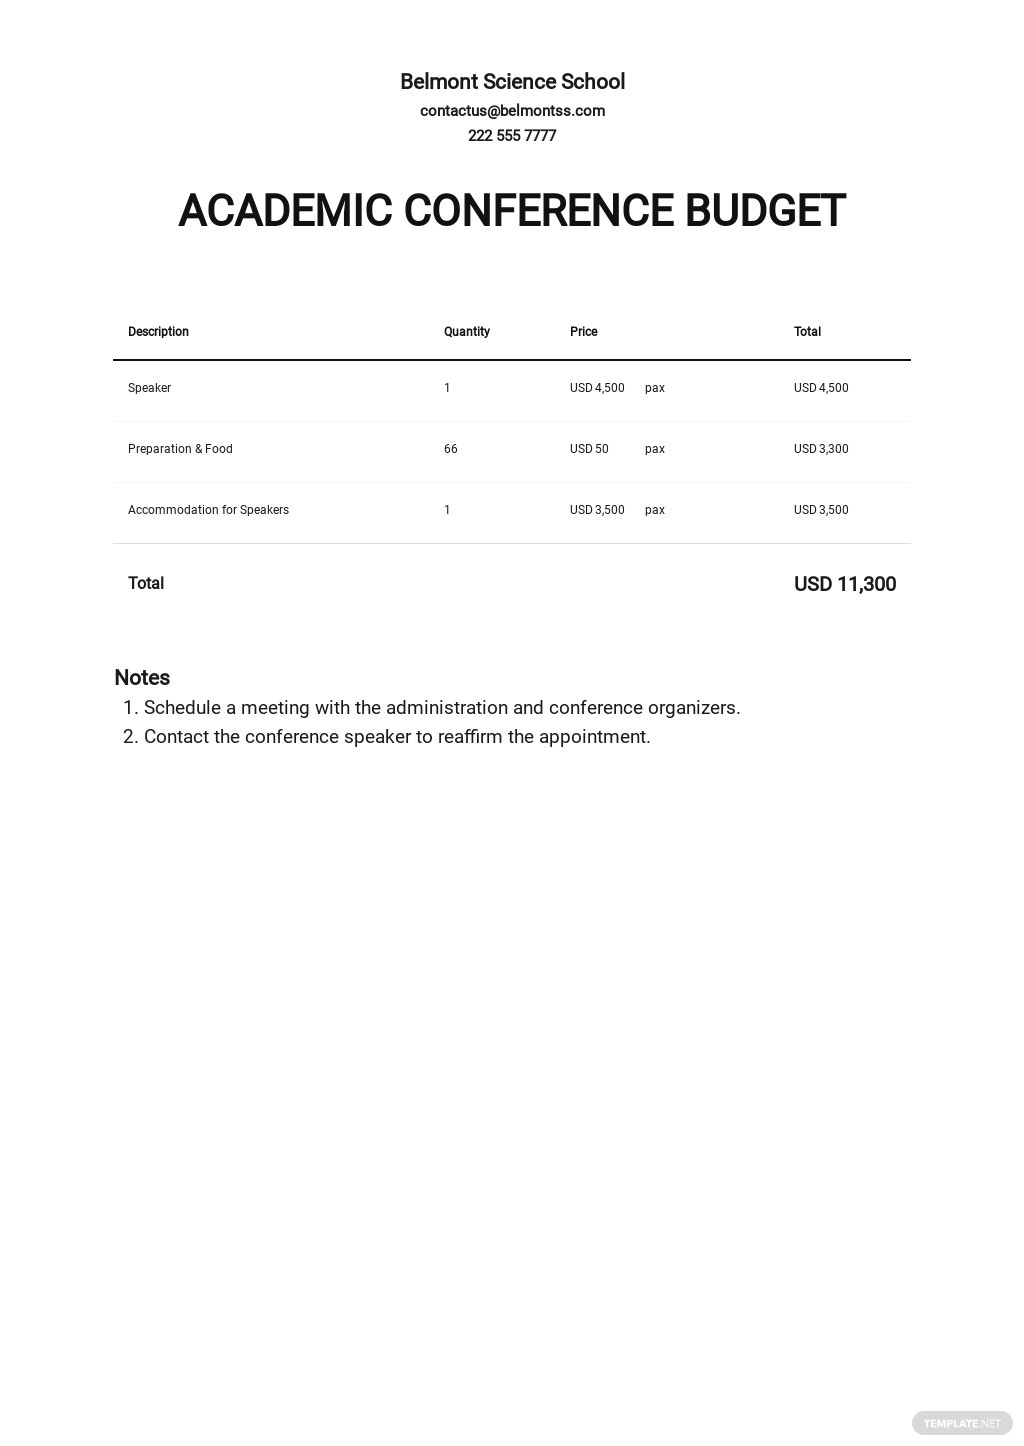 Academic Conference Budget Template.jpe